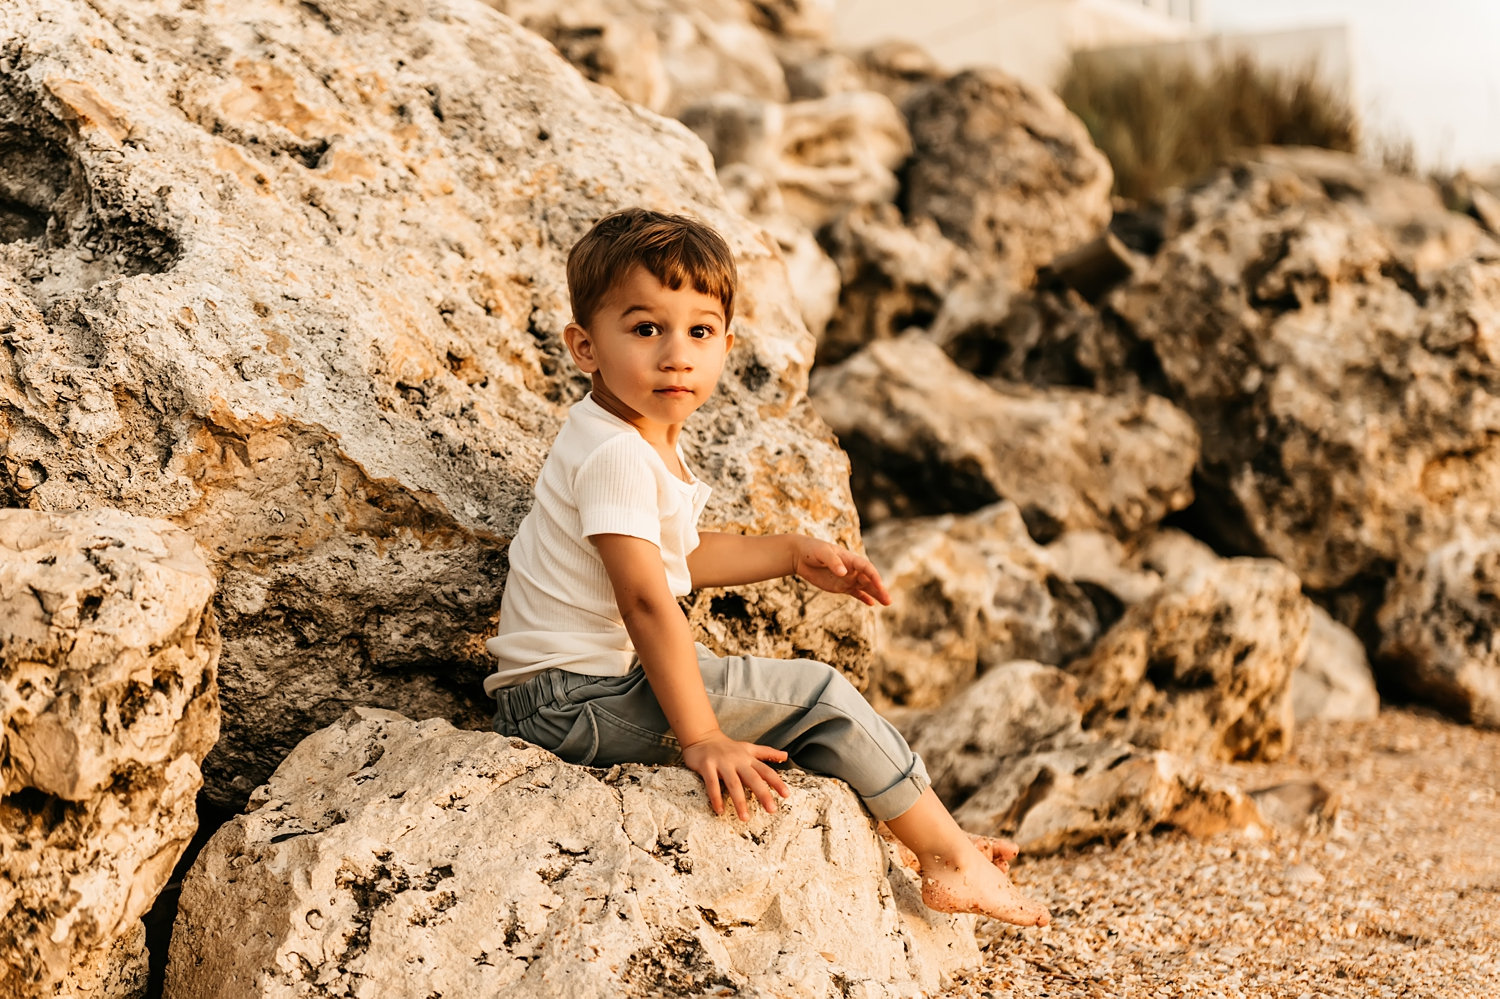 beach toddler portrait, beach toddler portrait boy, sunrise photo session, Ryaphotos